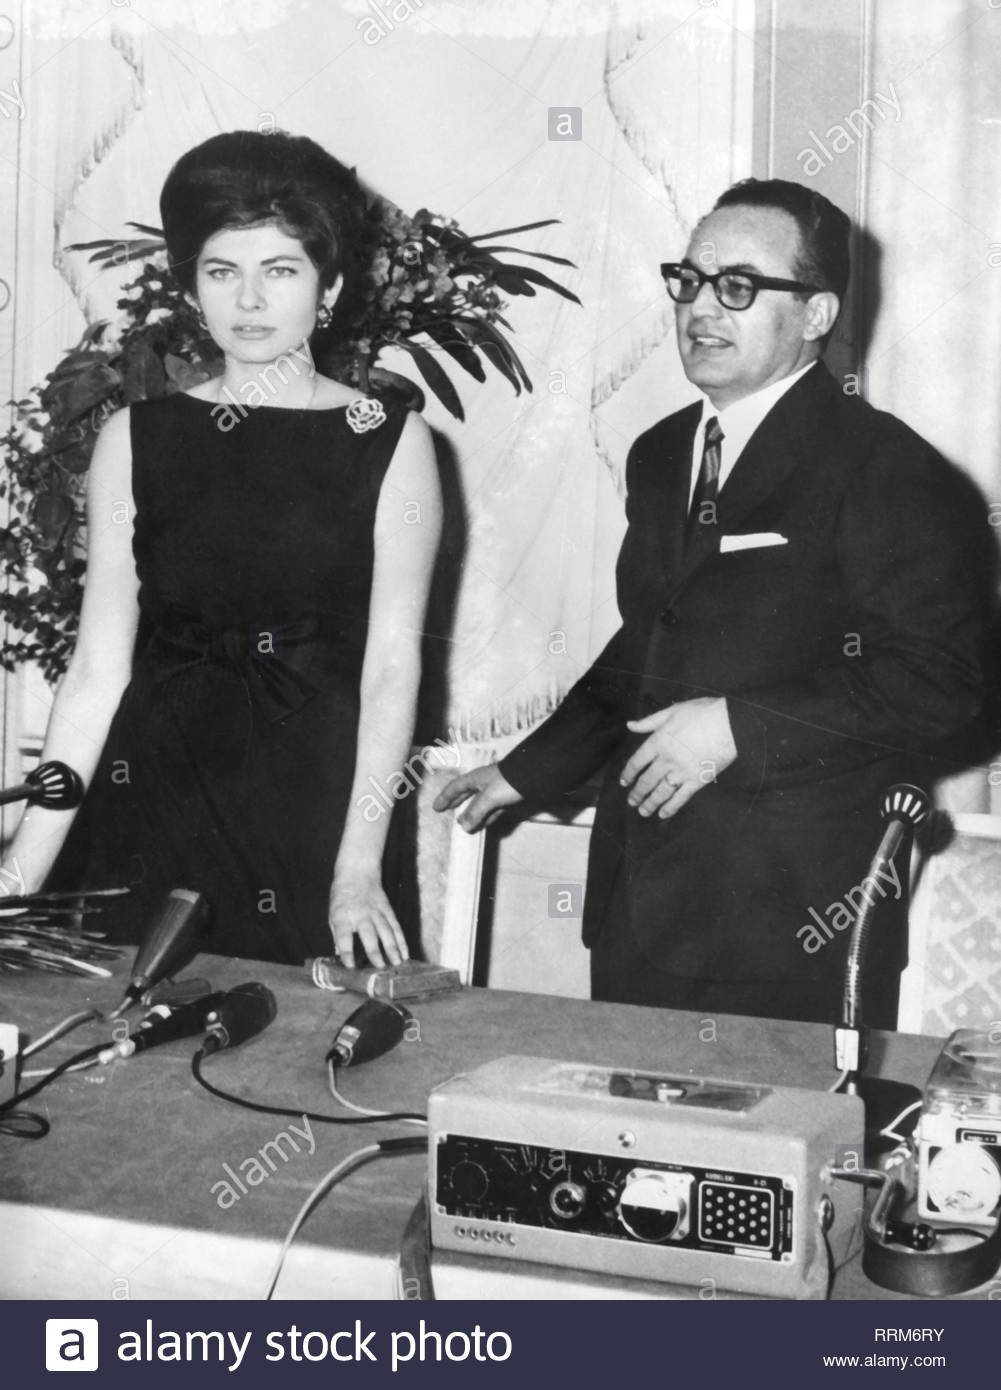 Soraya, 22.6.1932 - 25.10.2001, Empress of Persia 12.2.1951 - 6.4.1958, half length, with filmmaker Dino de Laurentiis, press conference, Rome, 15.3.1963, Additional-Rights-Clearance-Info-Not-Available Stock Photo